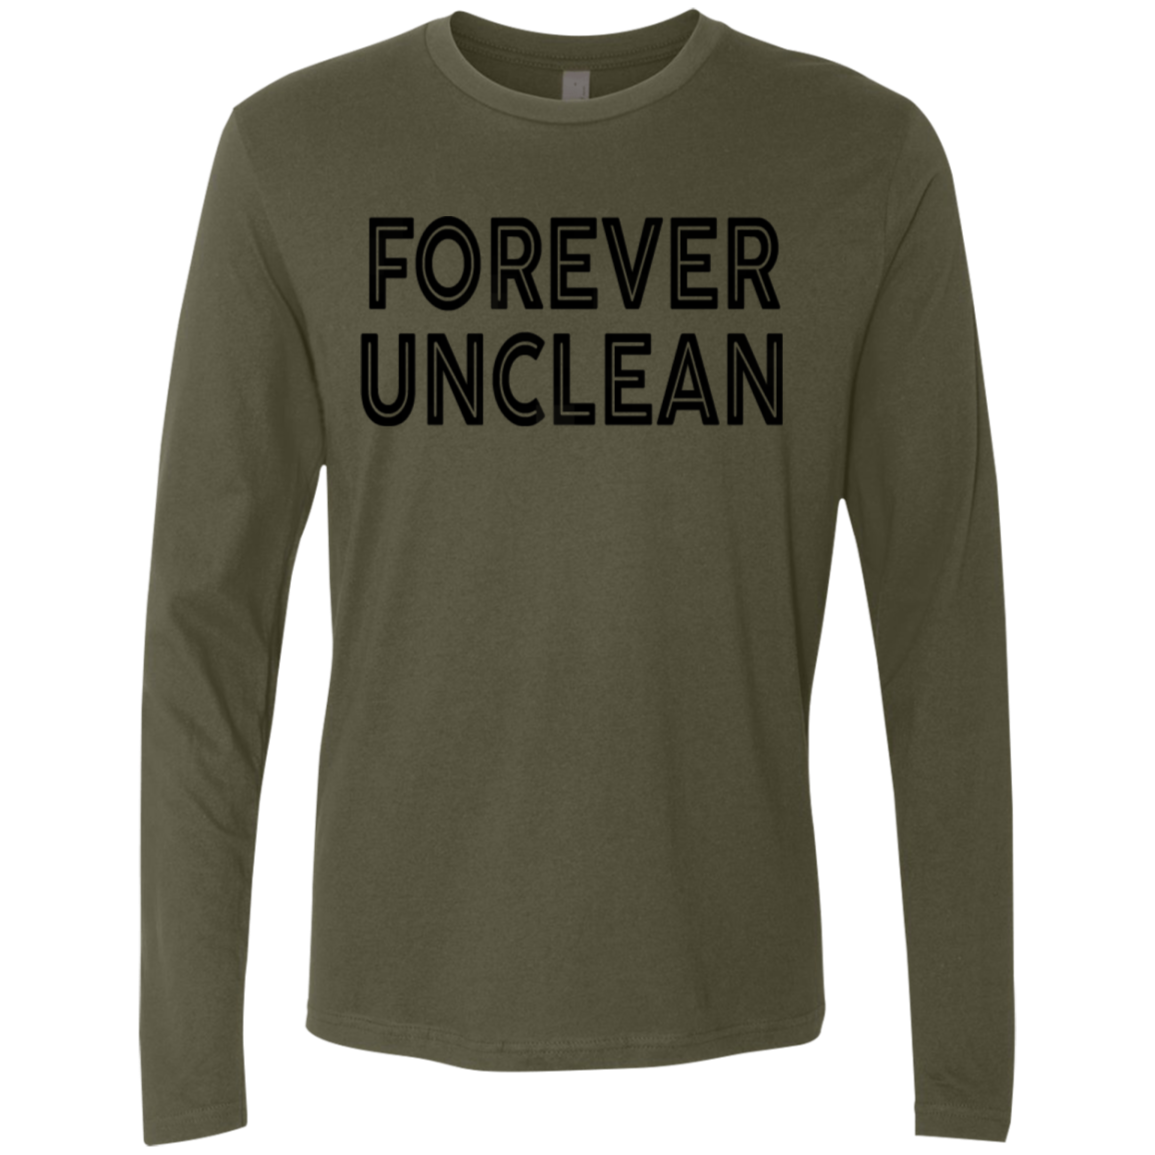 Forever Unclean Men's Long Sleeve Tee